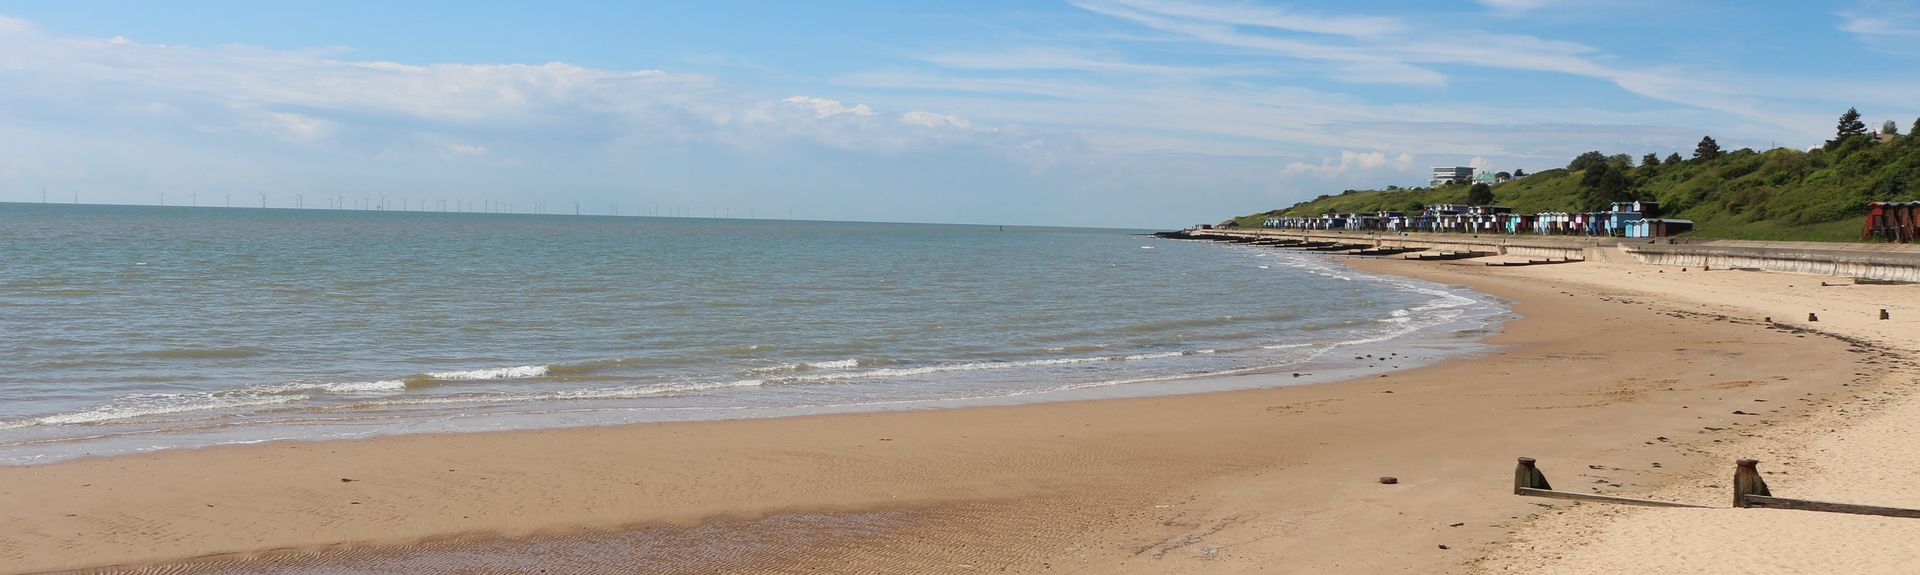 Walton on the Naze holiday lettings: Houses & more | HomeAway